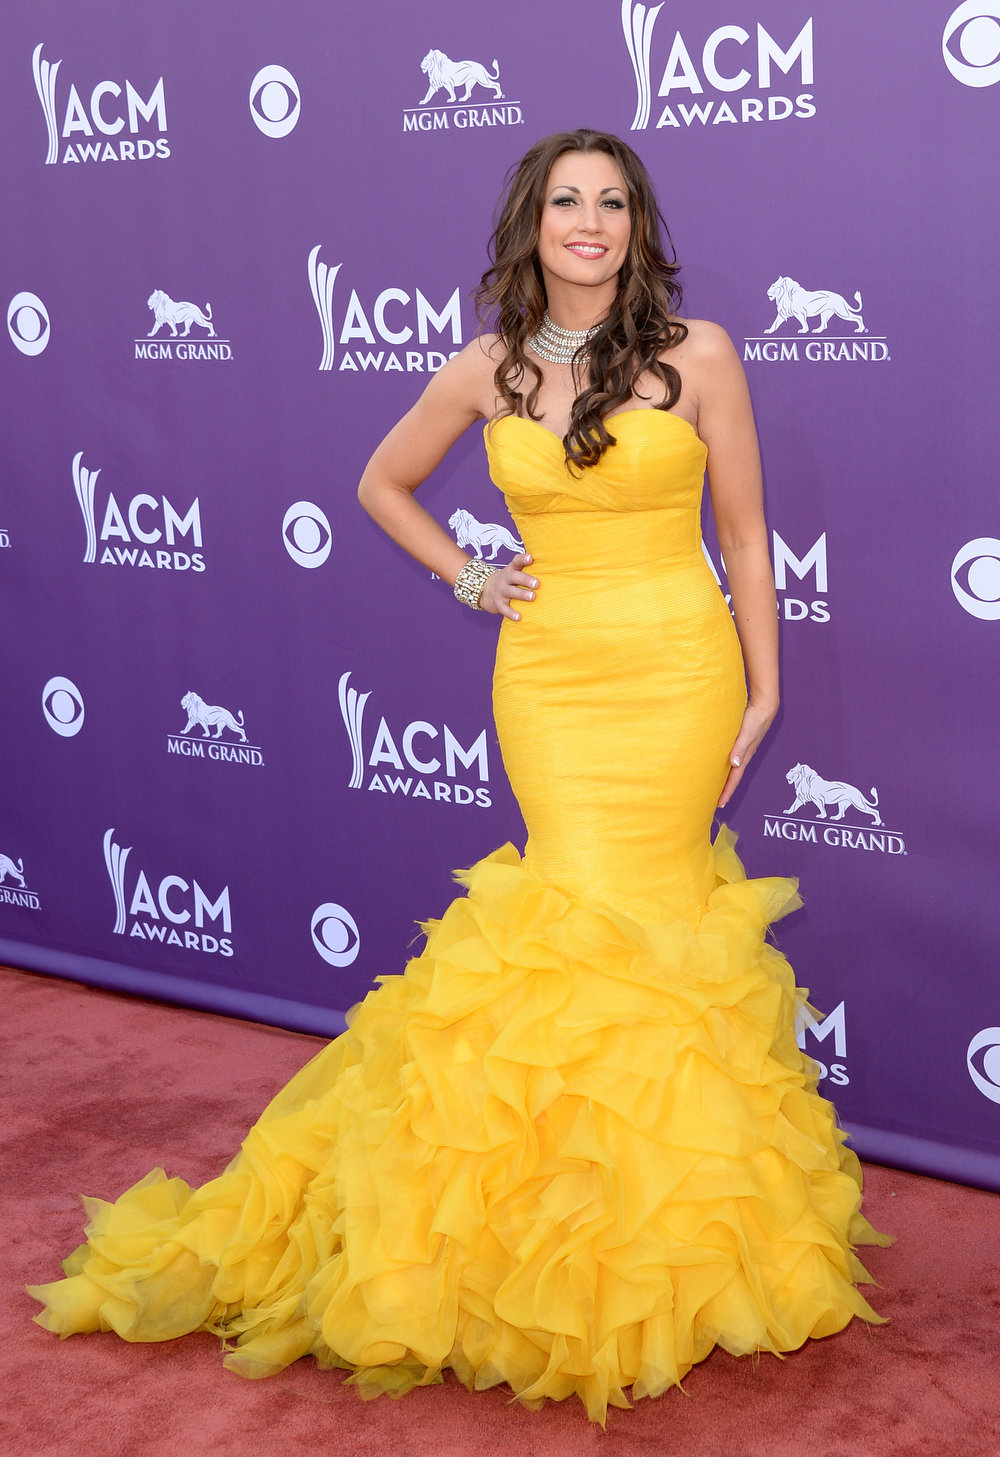 . Singer Danielle Peck attends the 48th Annual Academy of Country Music Awards at the MGM Grand Garden Arena on April 7, 2013 in Las Vegas, Nevada.  (Photo by Jason Merritt/Getty Images)